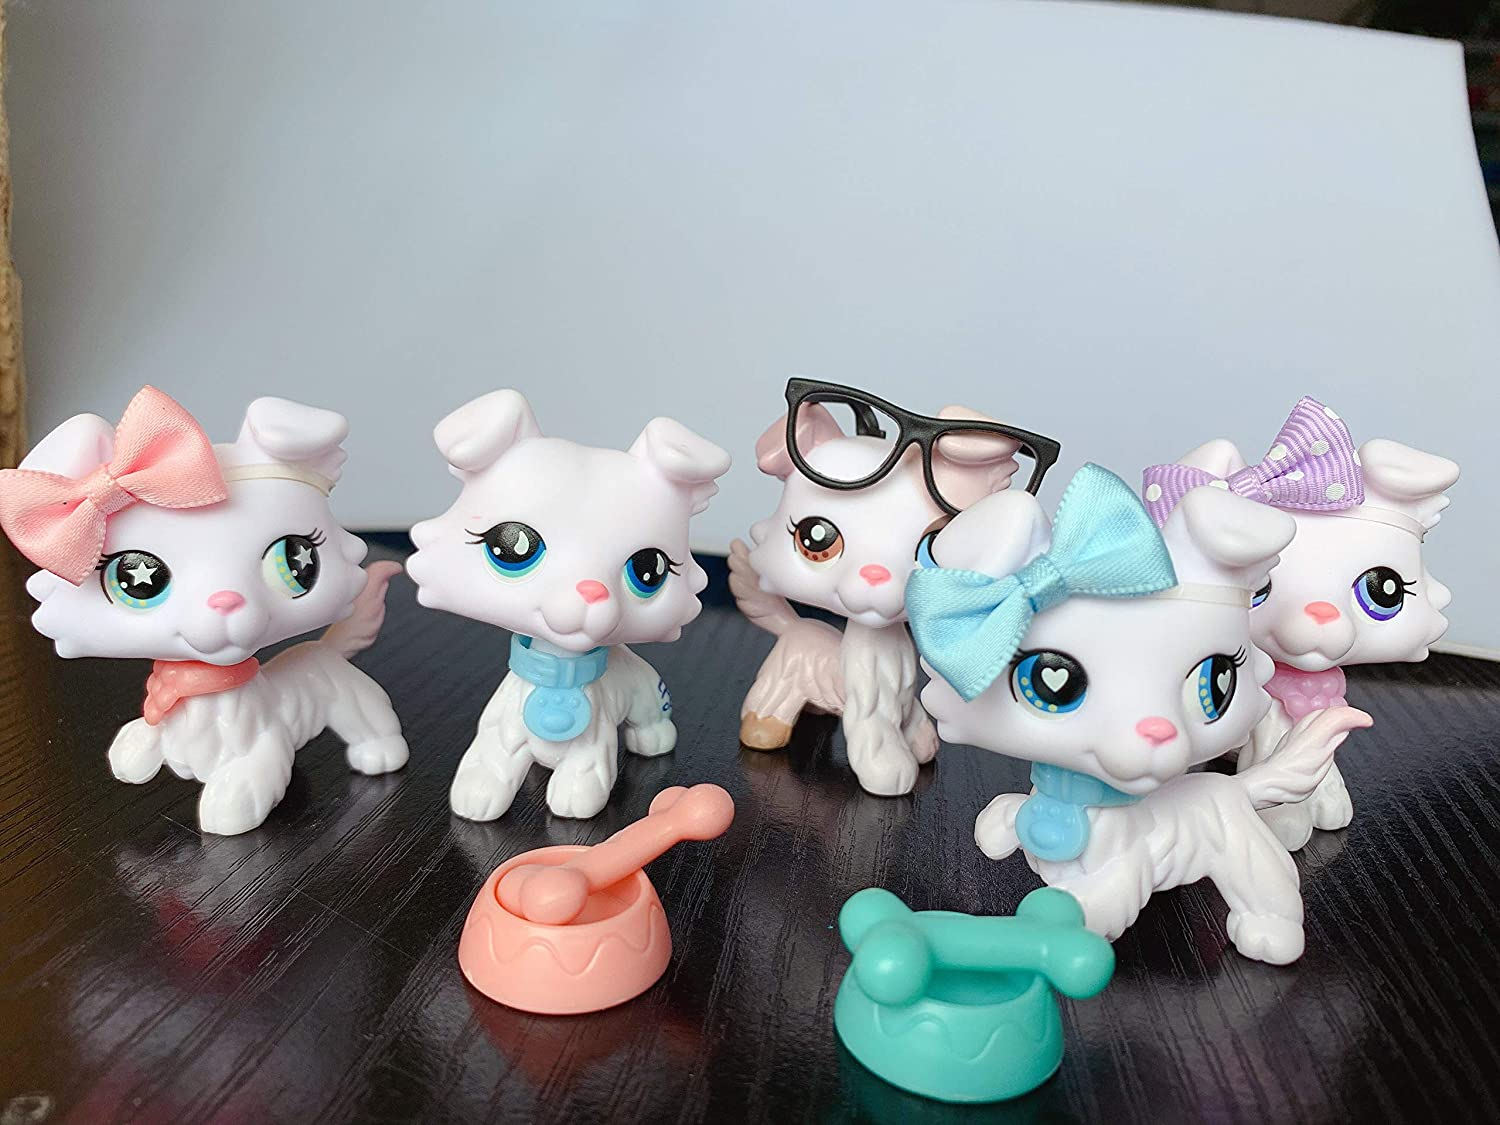 Judylovelps lps White Collie Custom ooak Collie Ice Cream #059#023#024#032#084 Rare Figures Collectable Kids Gift